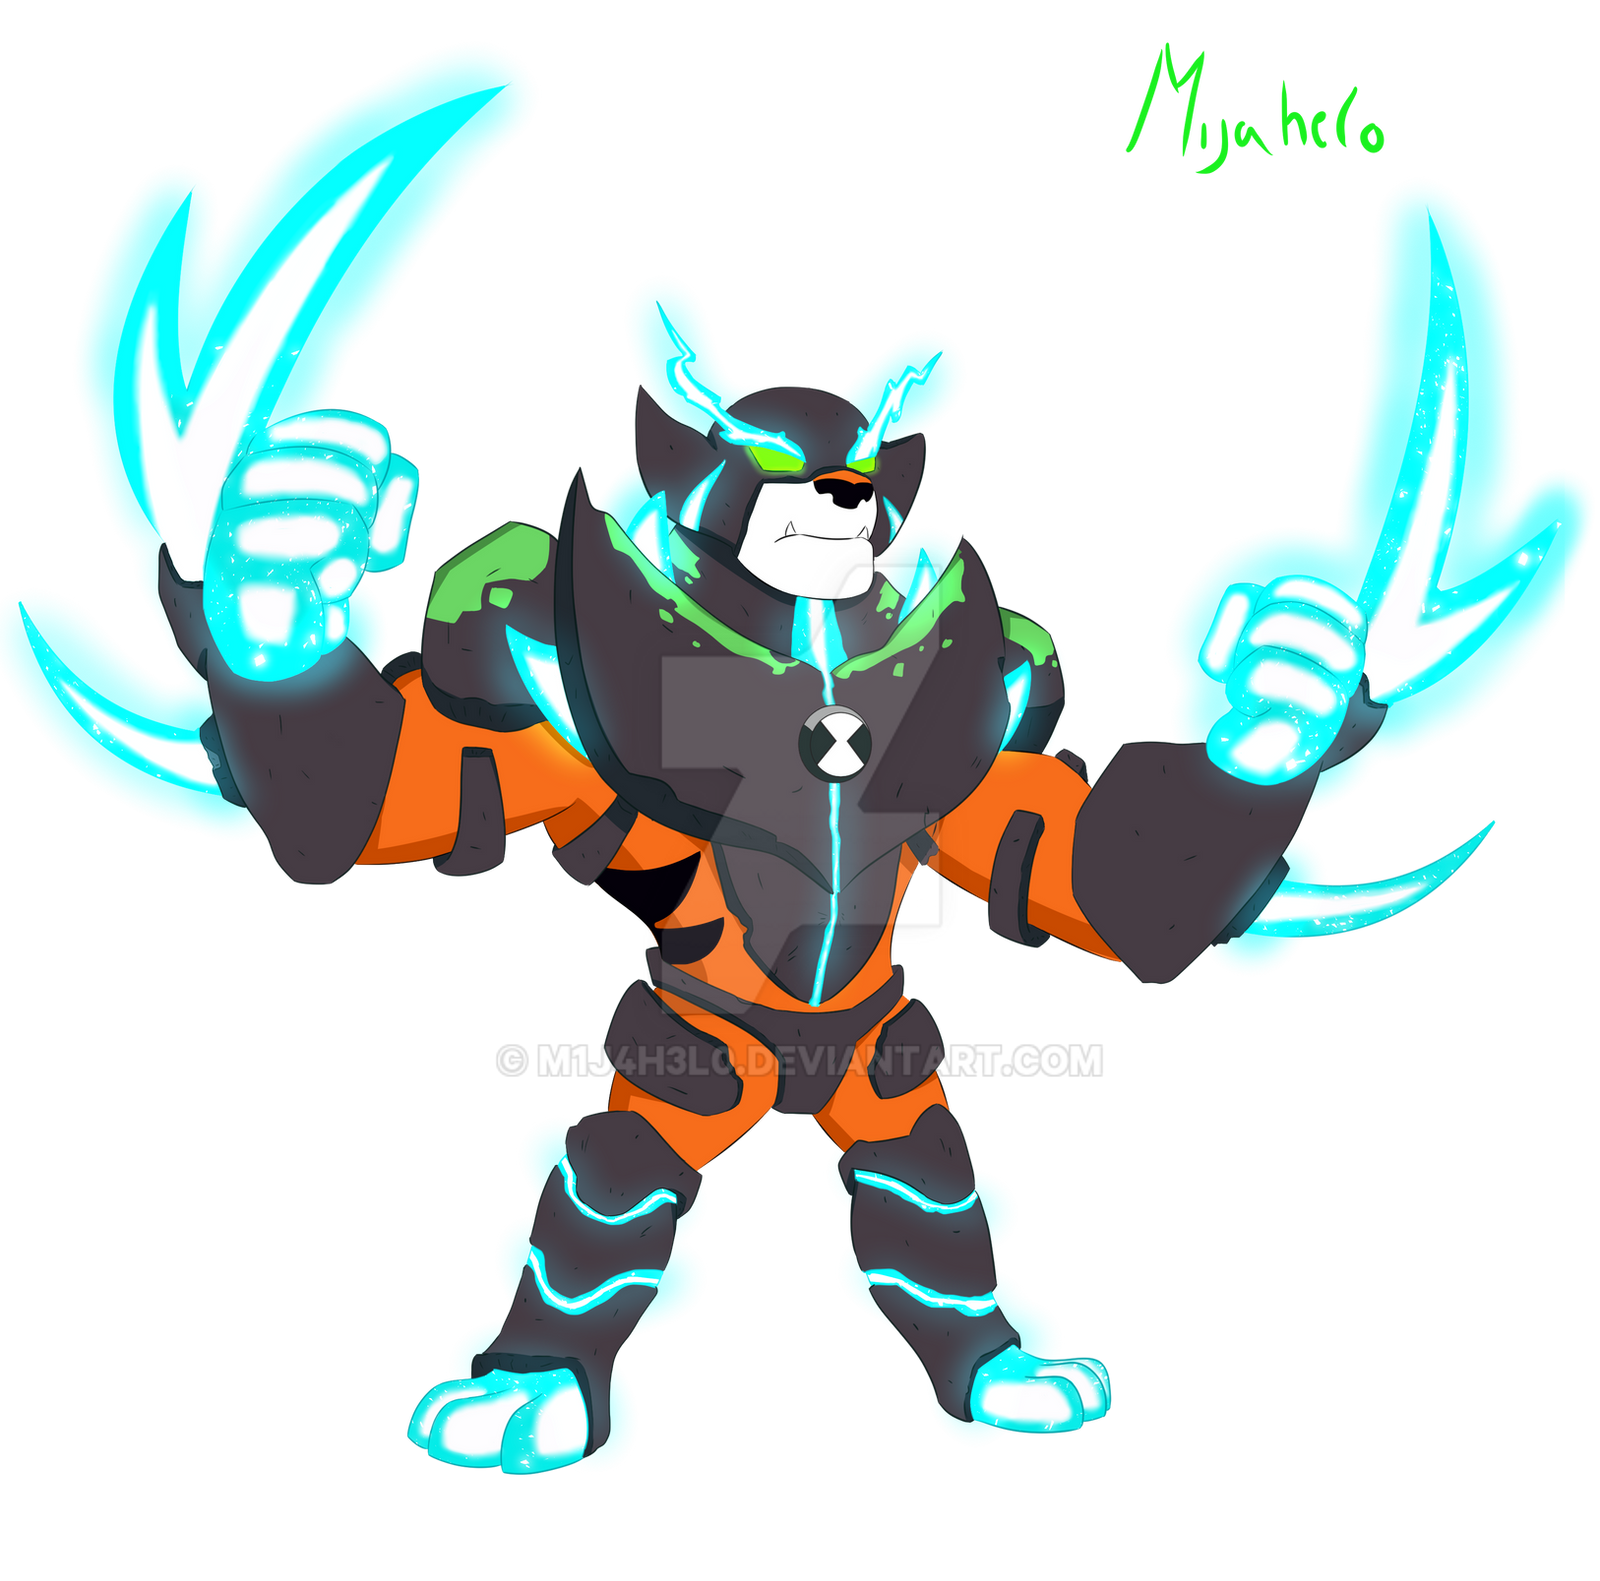 Ben 10000 Ultimate Alien: Ben 10 Rath Omni-Enhanced By M1j4h3l0 On DeviantArt